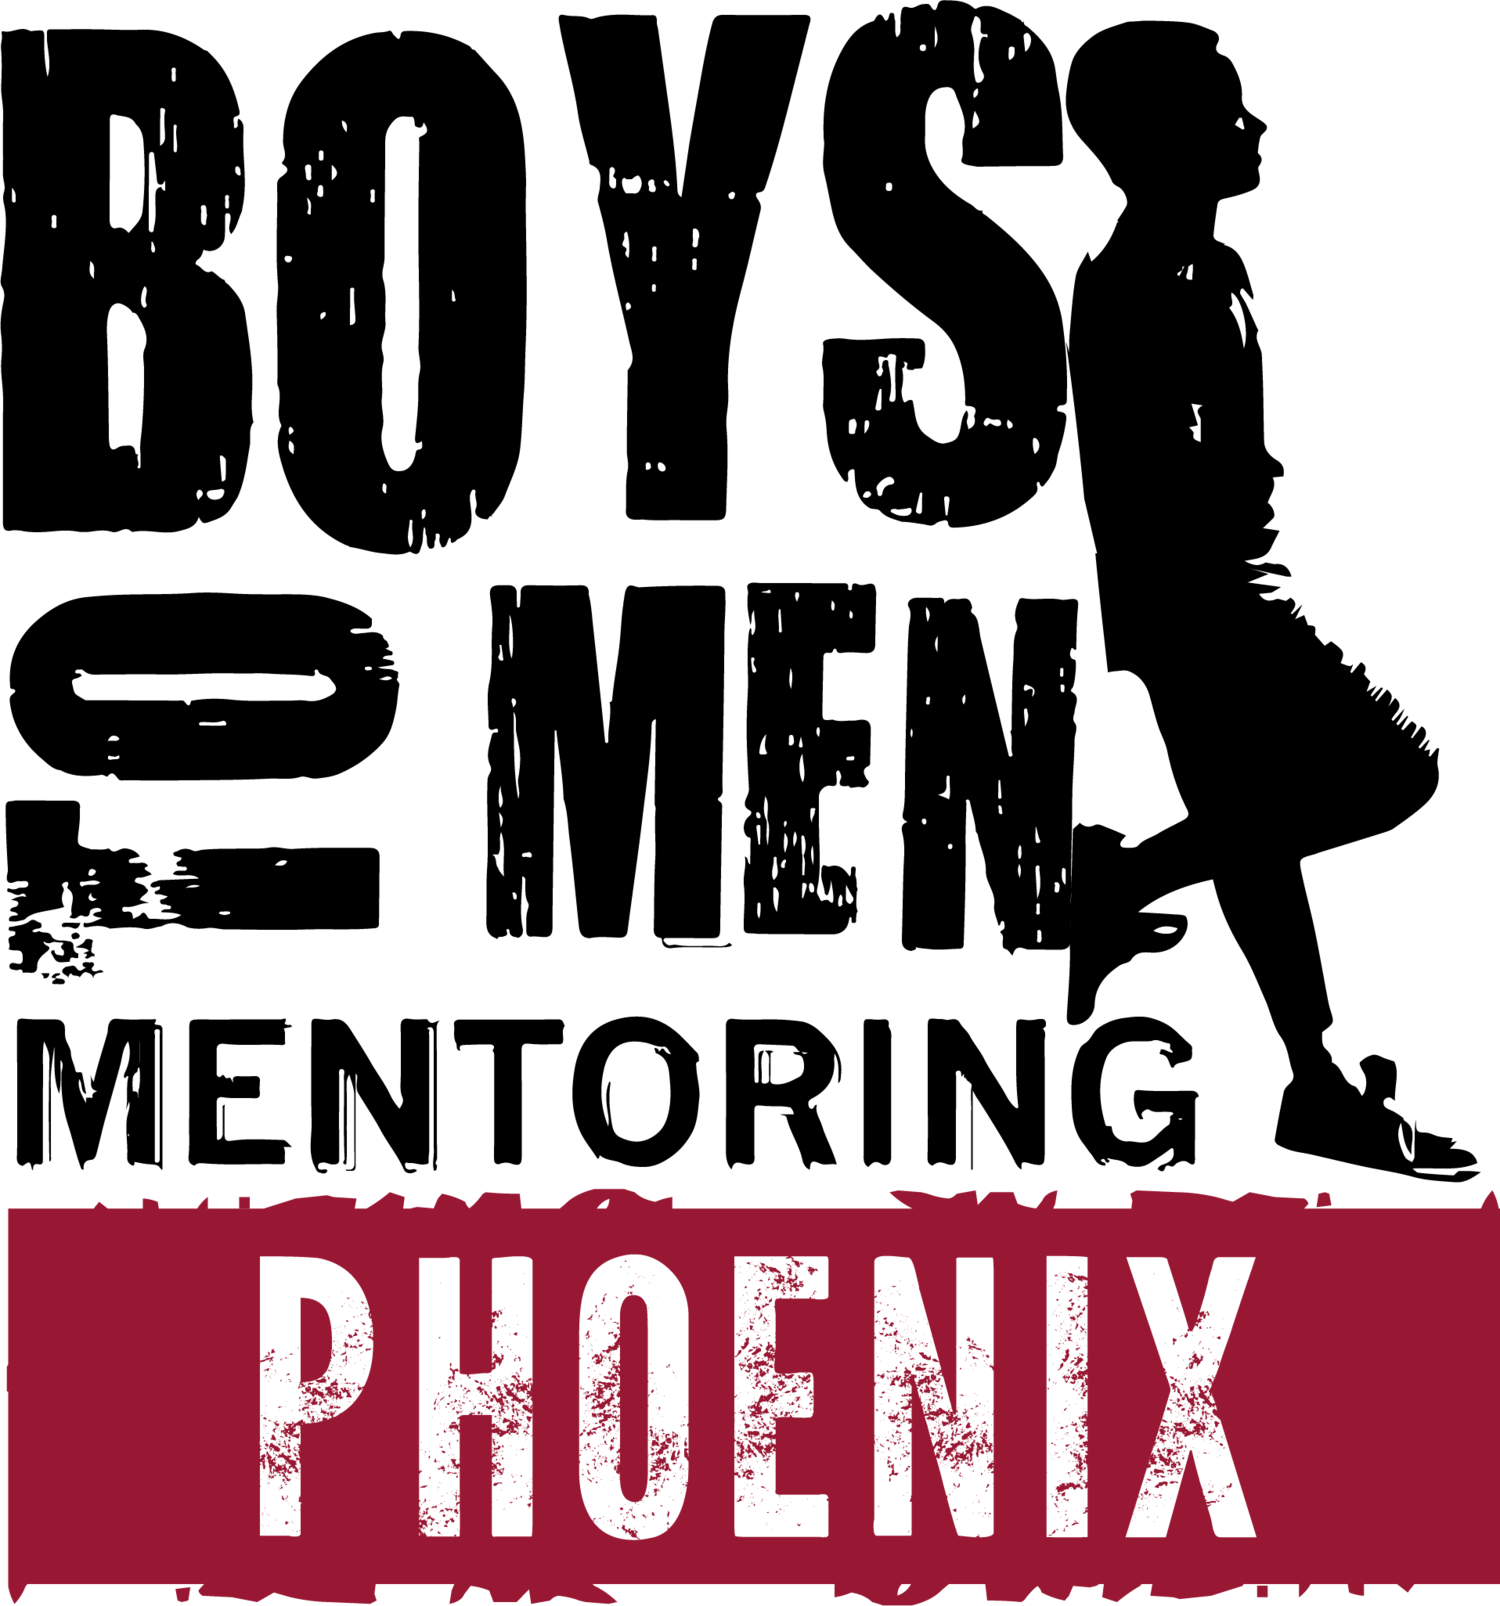 Boys To Men of Greater Phoenix   Mentoring Network